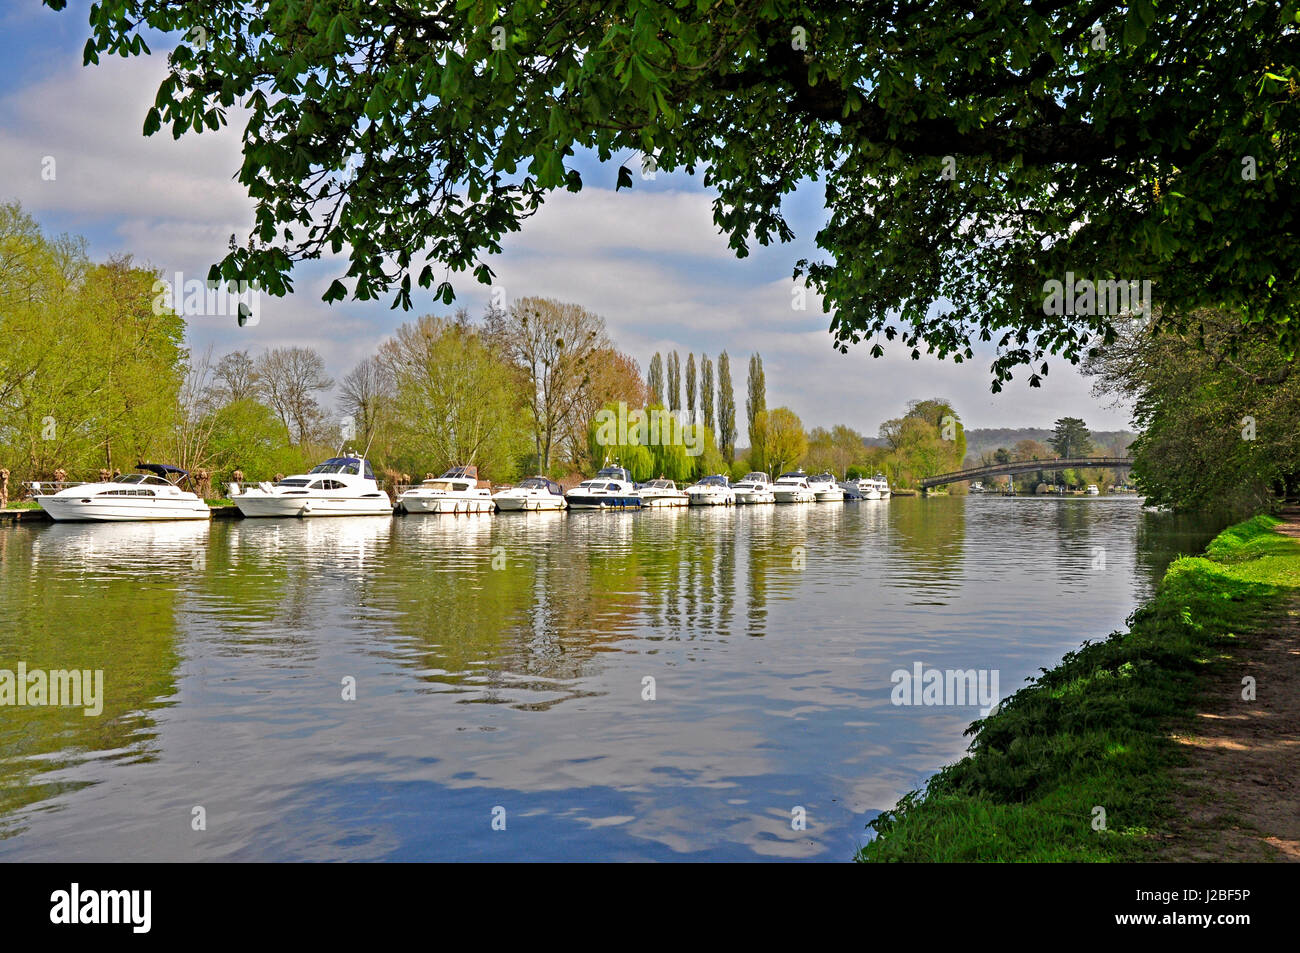 View to moored river cruisers -reflections in the river- framed by trees - sunlight - blue sky - Thames path - Hurley - Stock Image